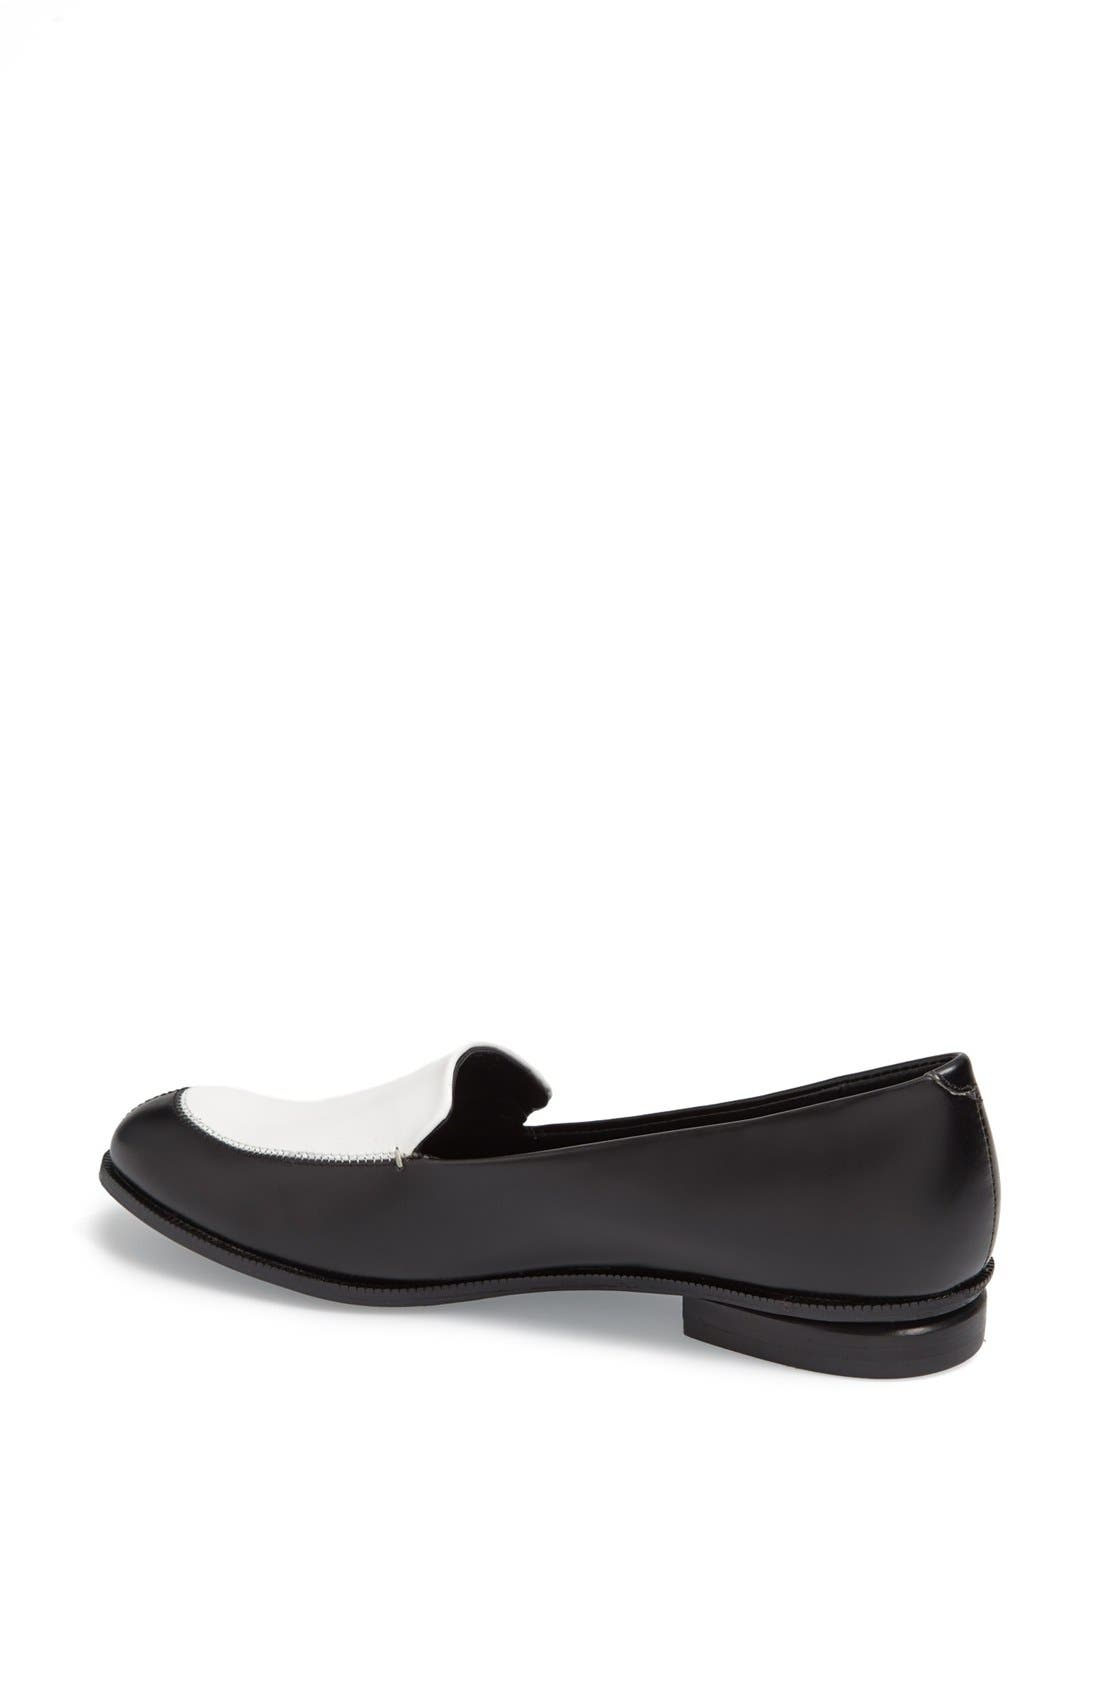 Alternate Image 2  - Kenneth Cole New York 'Hudson' Leather Flat